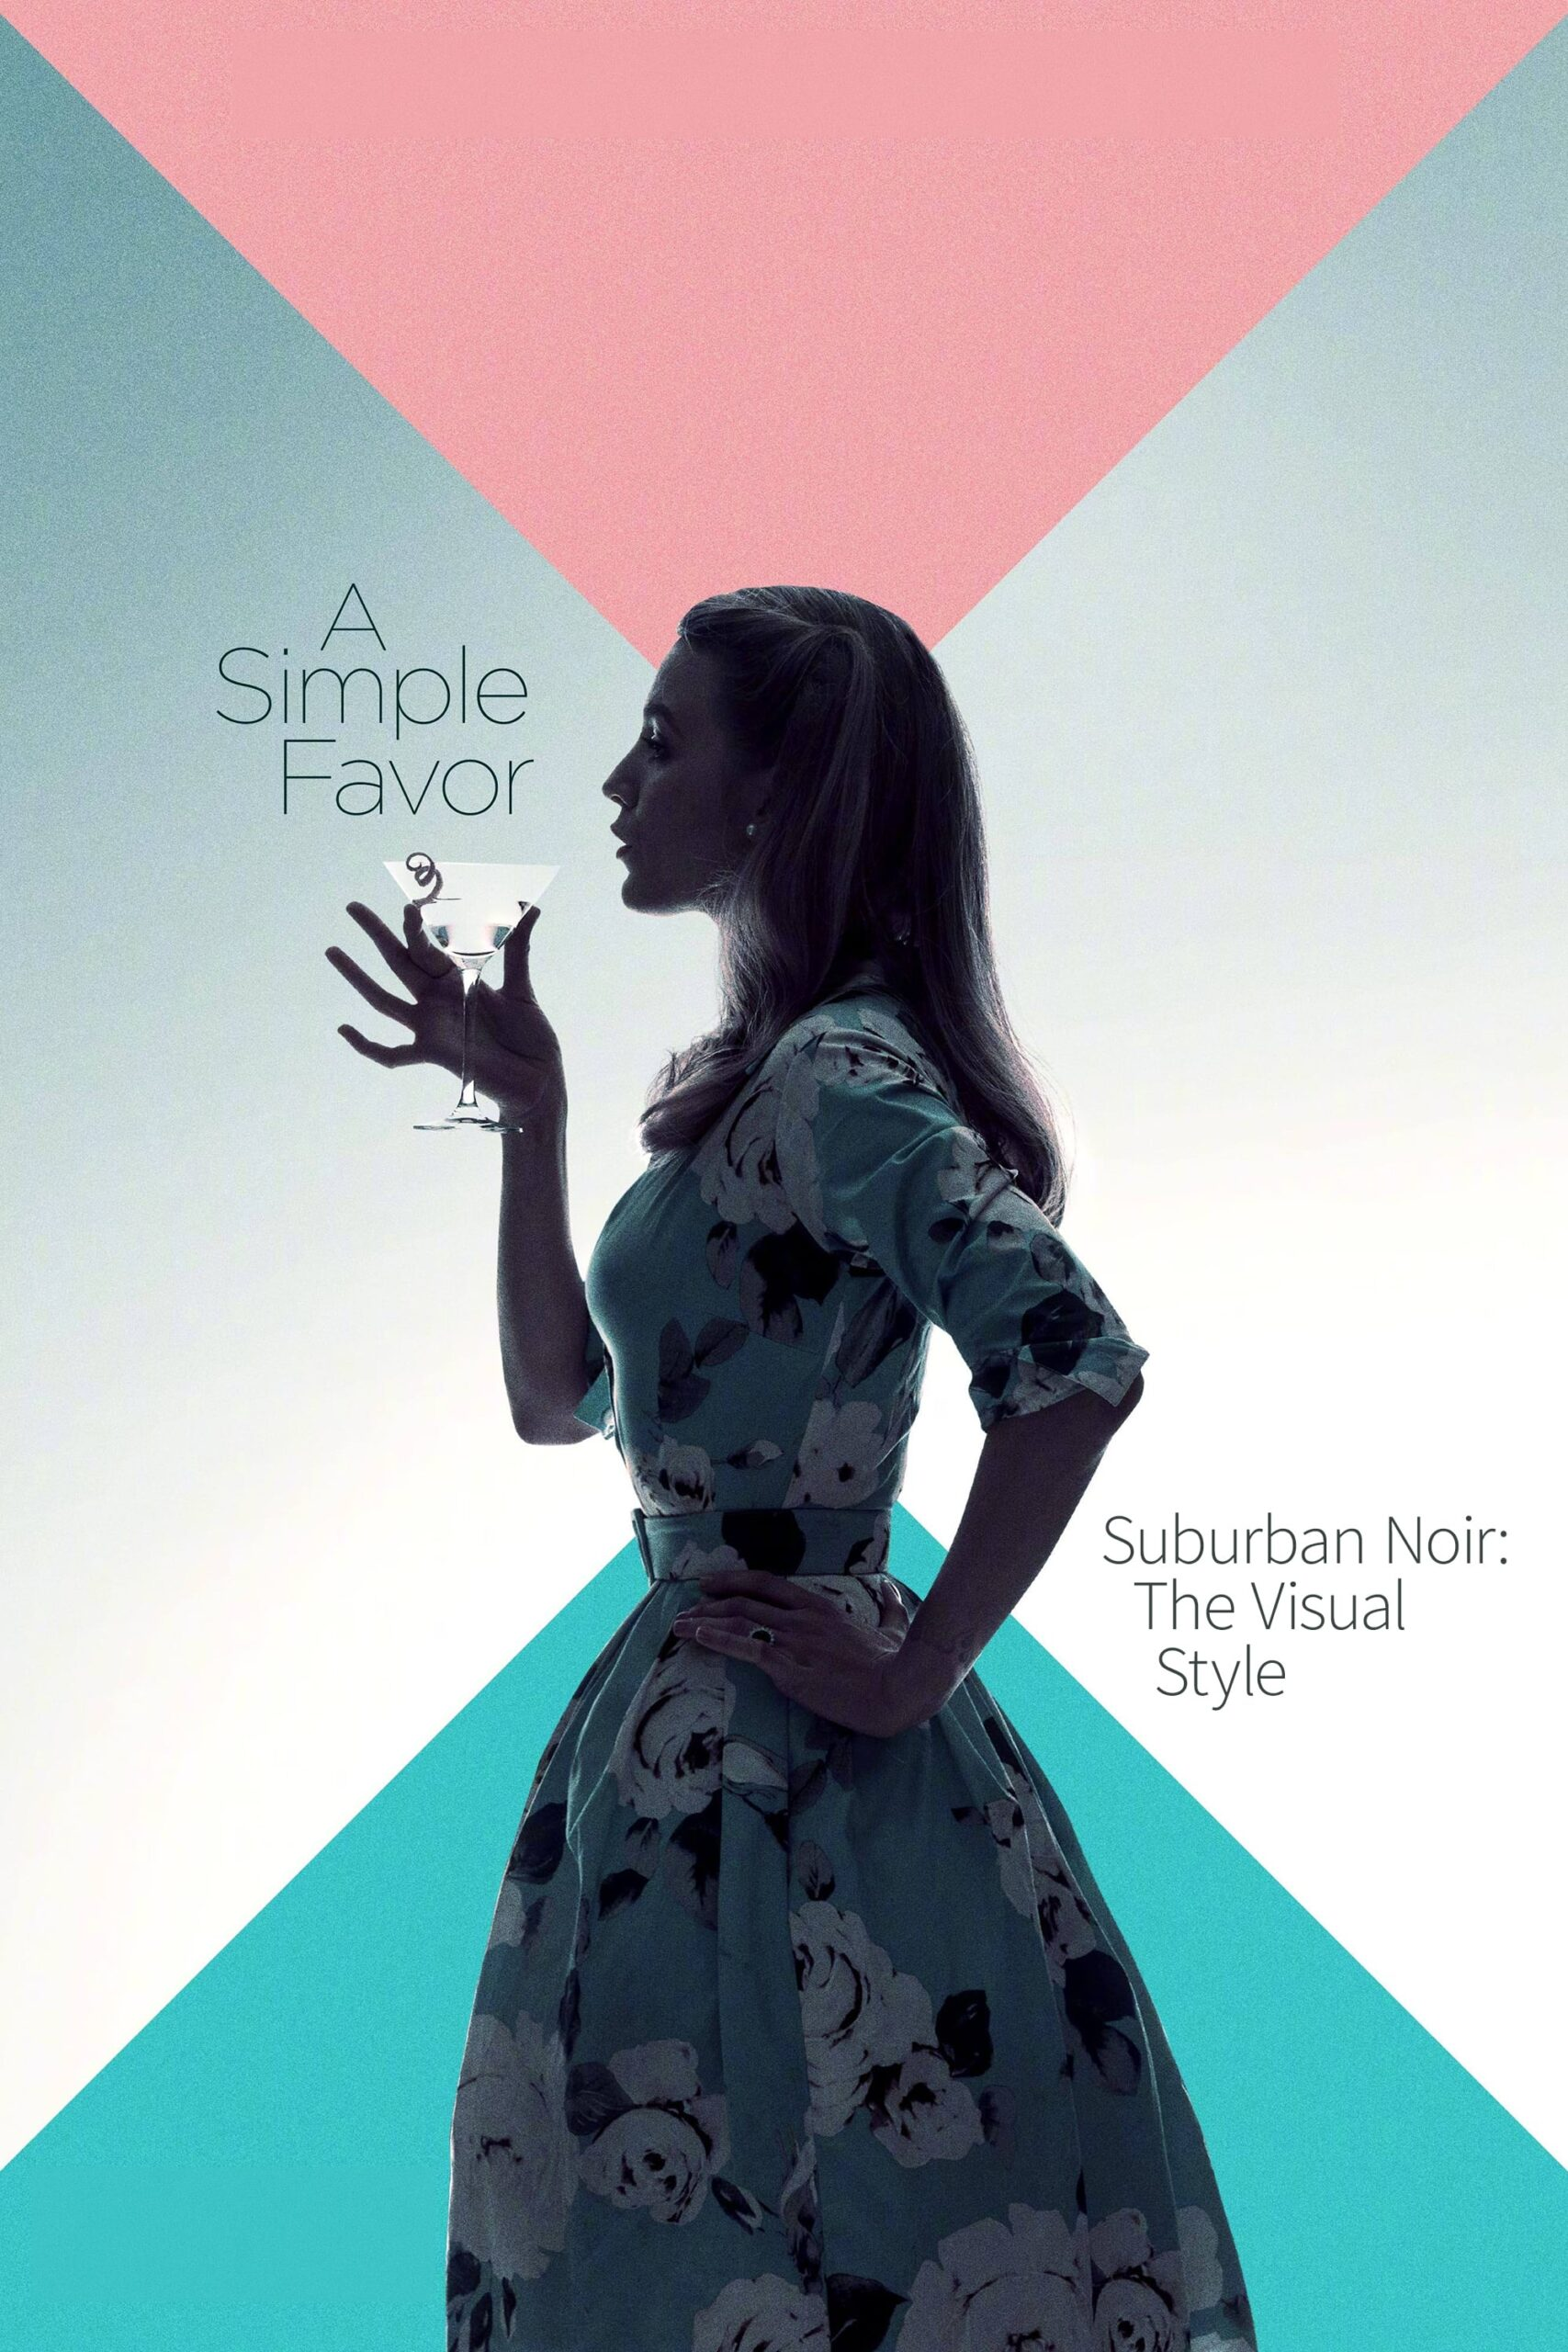 A Simple Favor Streaming : simple, favor, streaming, Suburban, Noir:, Visual, Style, Simple, Favor', Movie, Streaming, Online, Watch